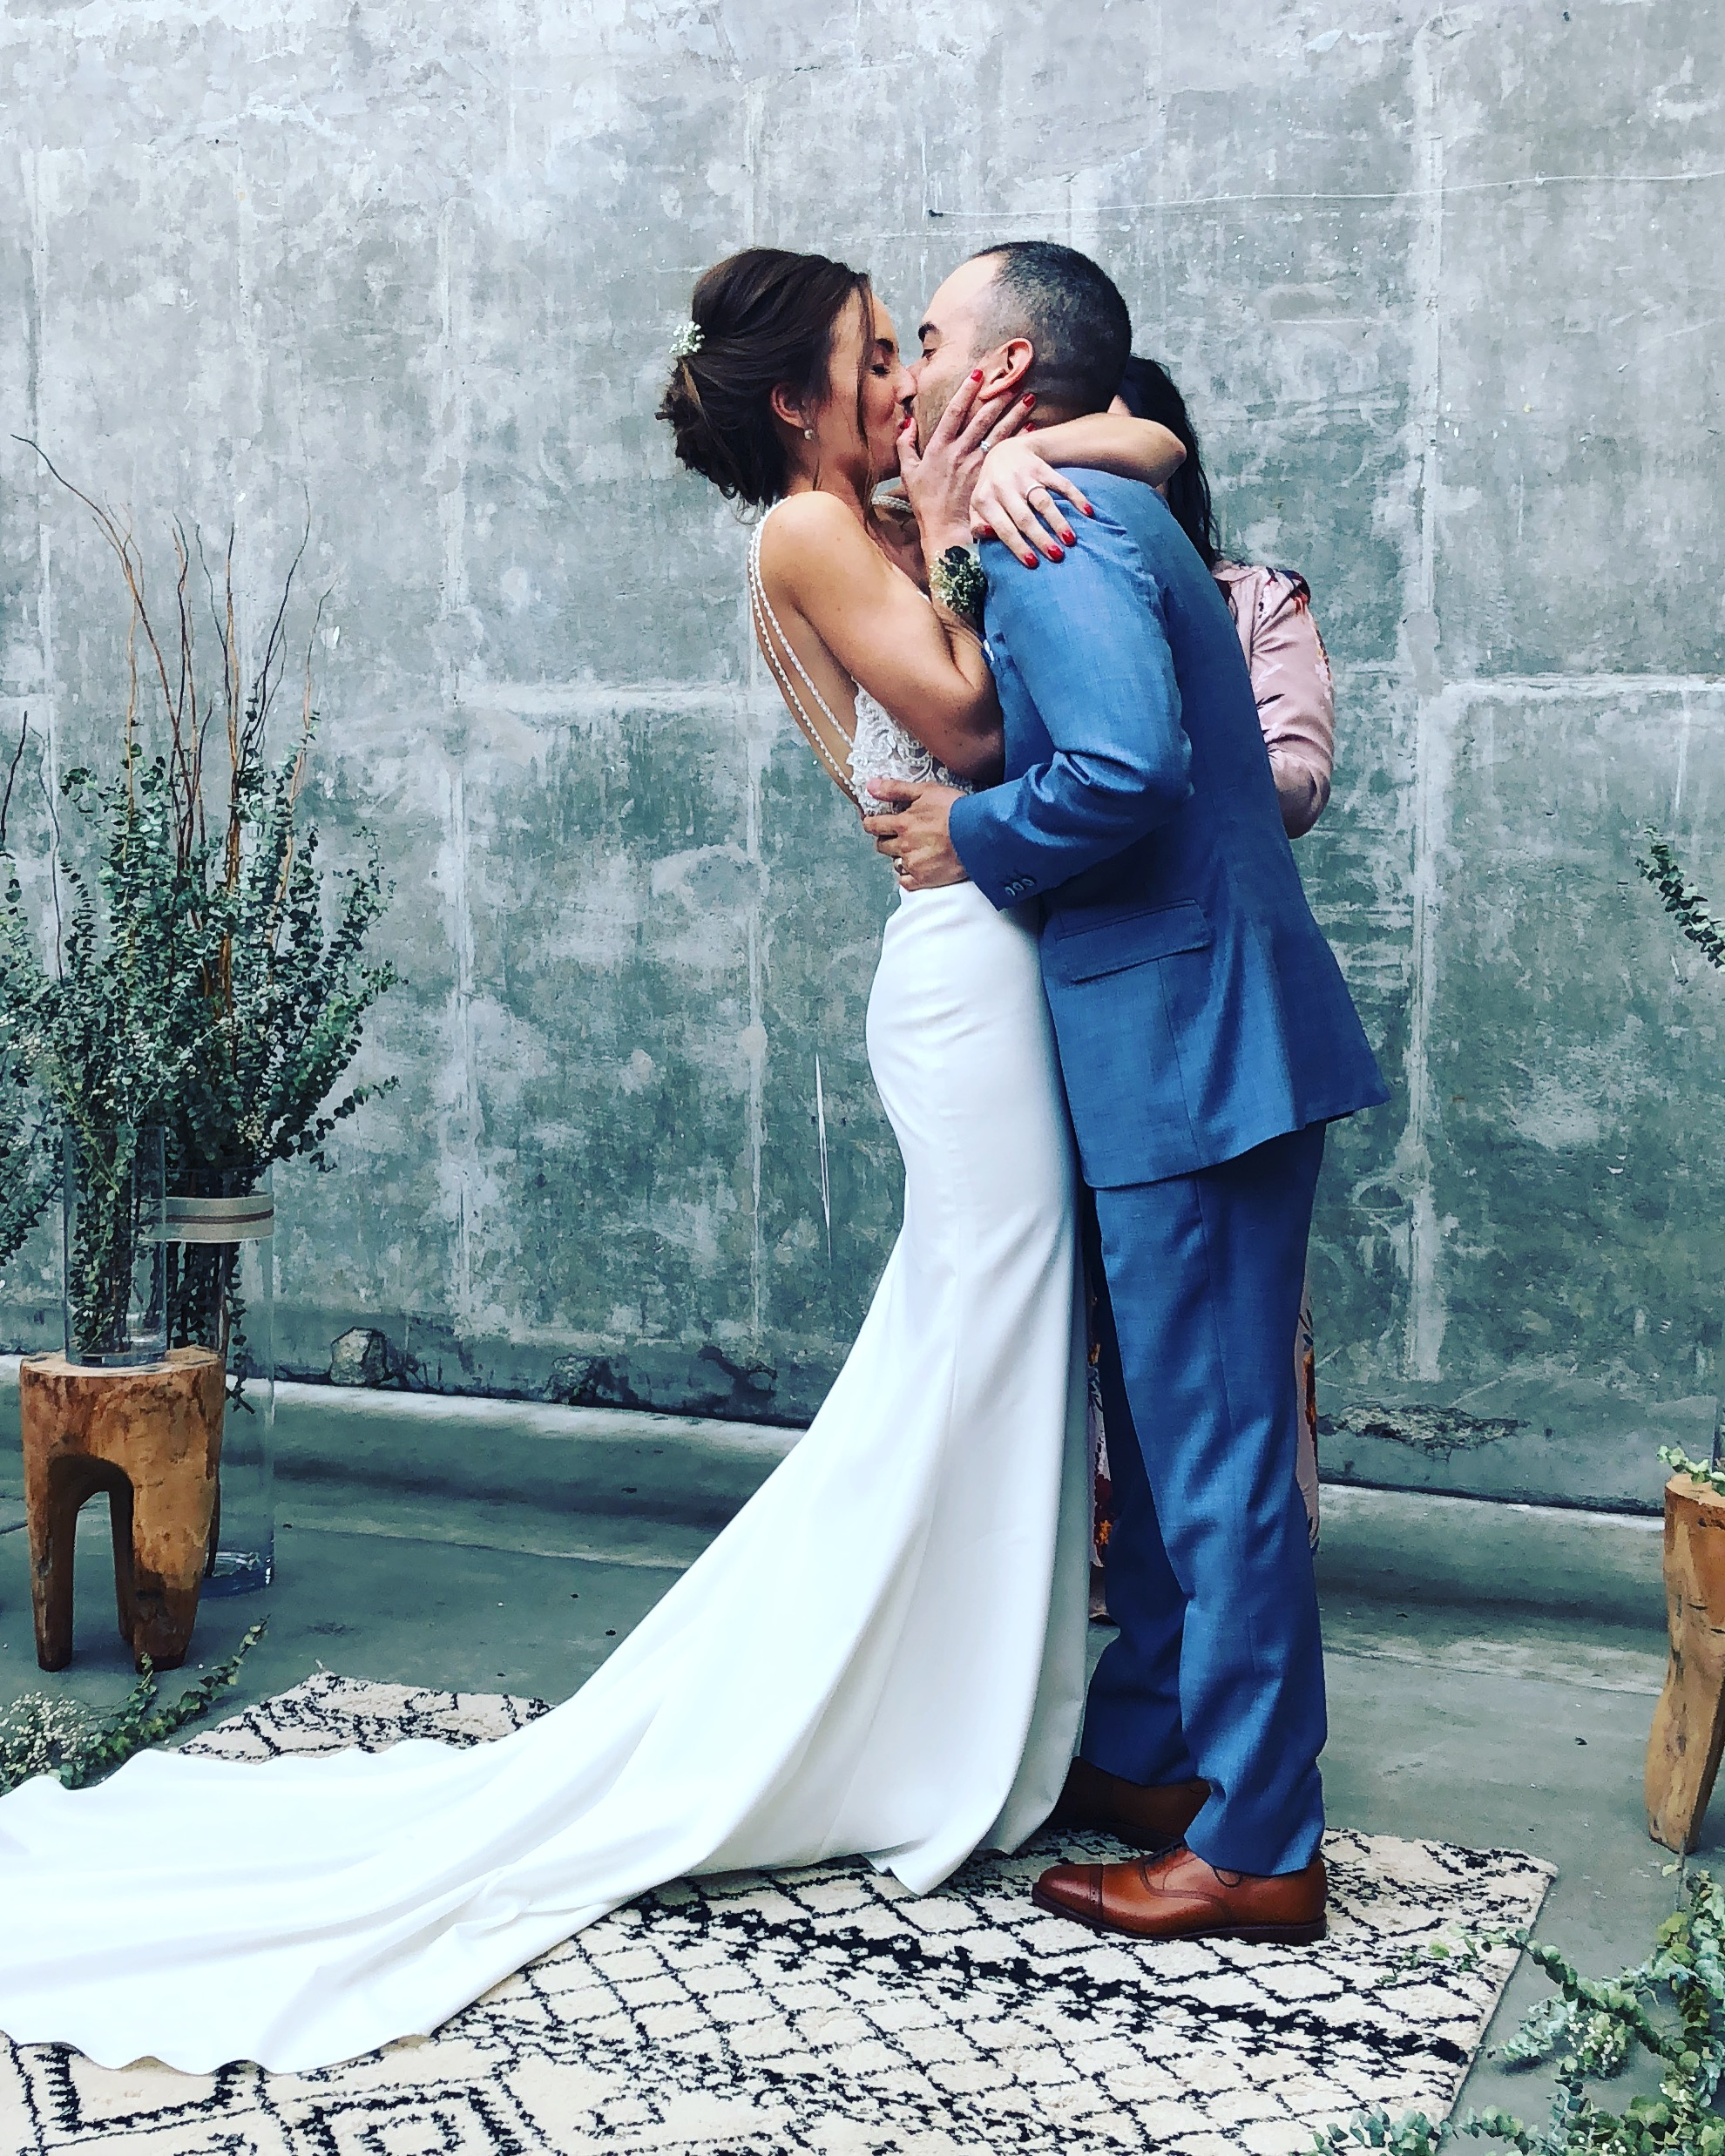 Our wedding day was magical and the best day of my life :)